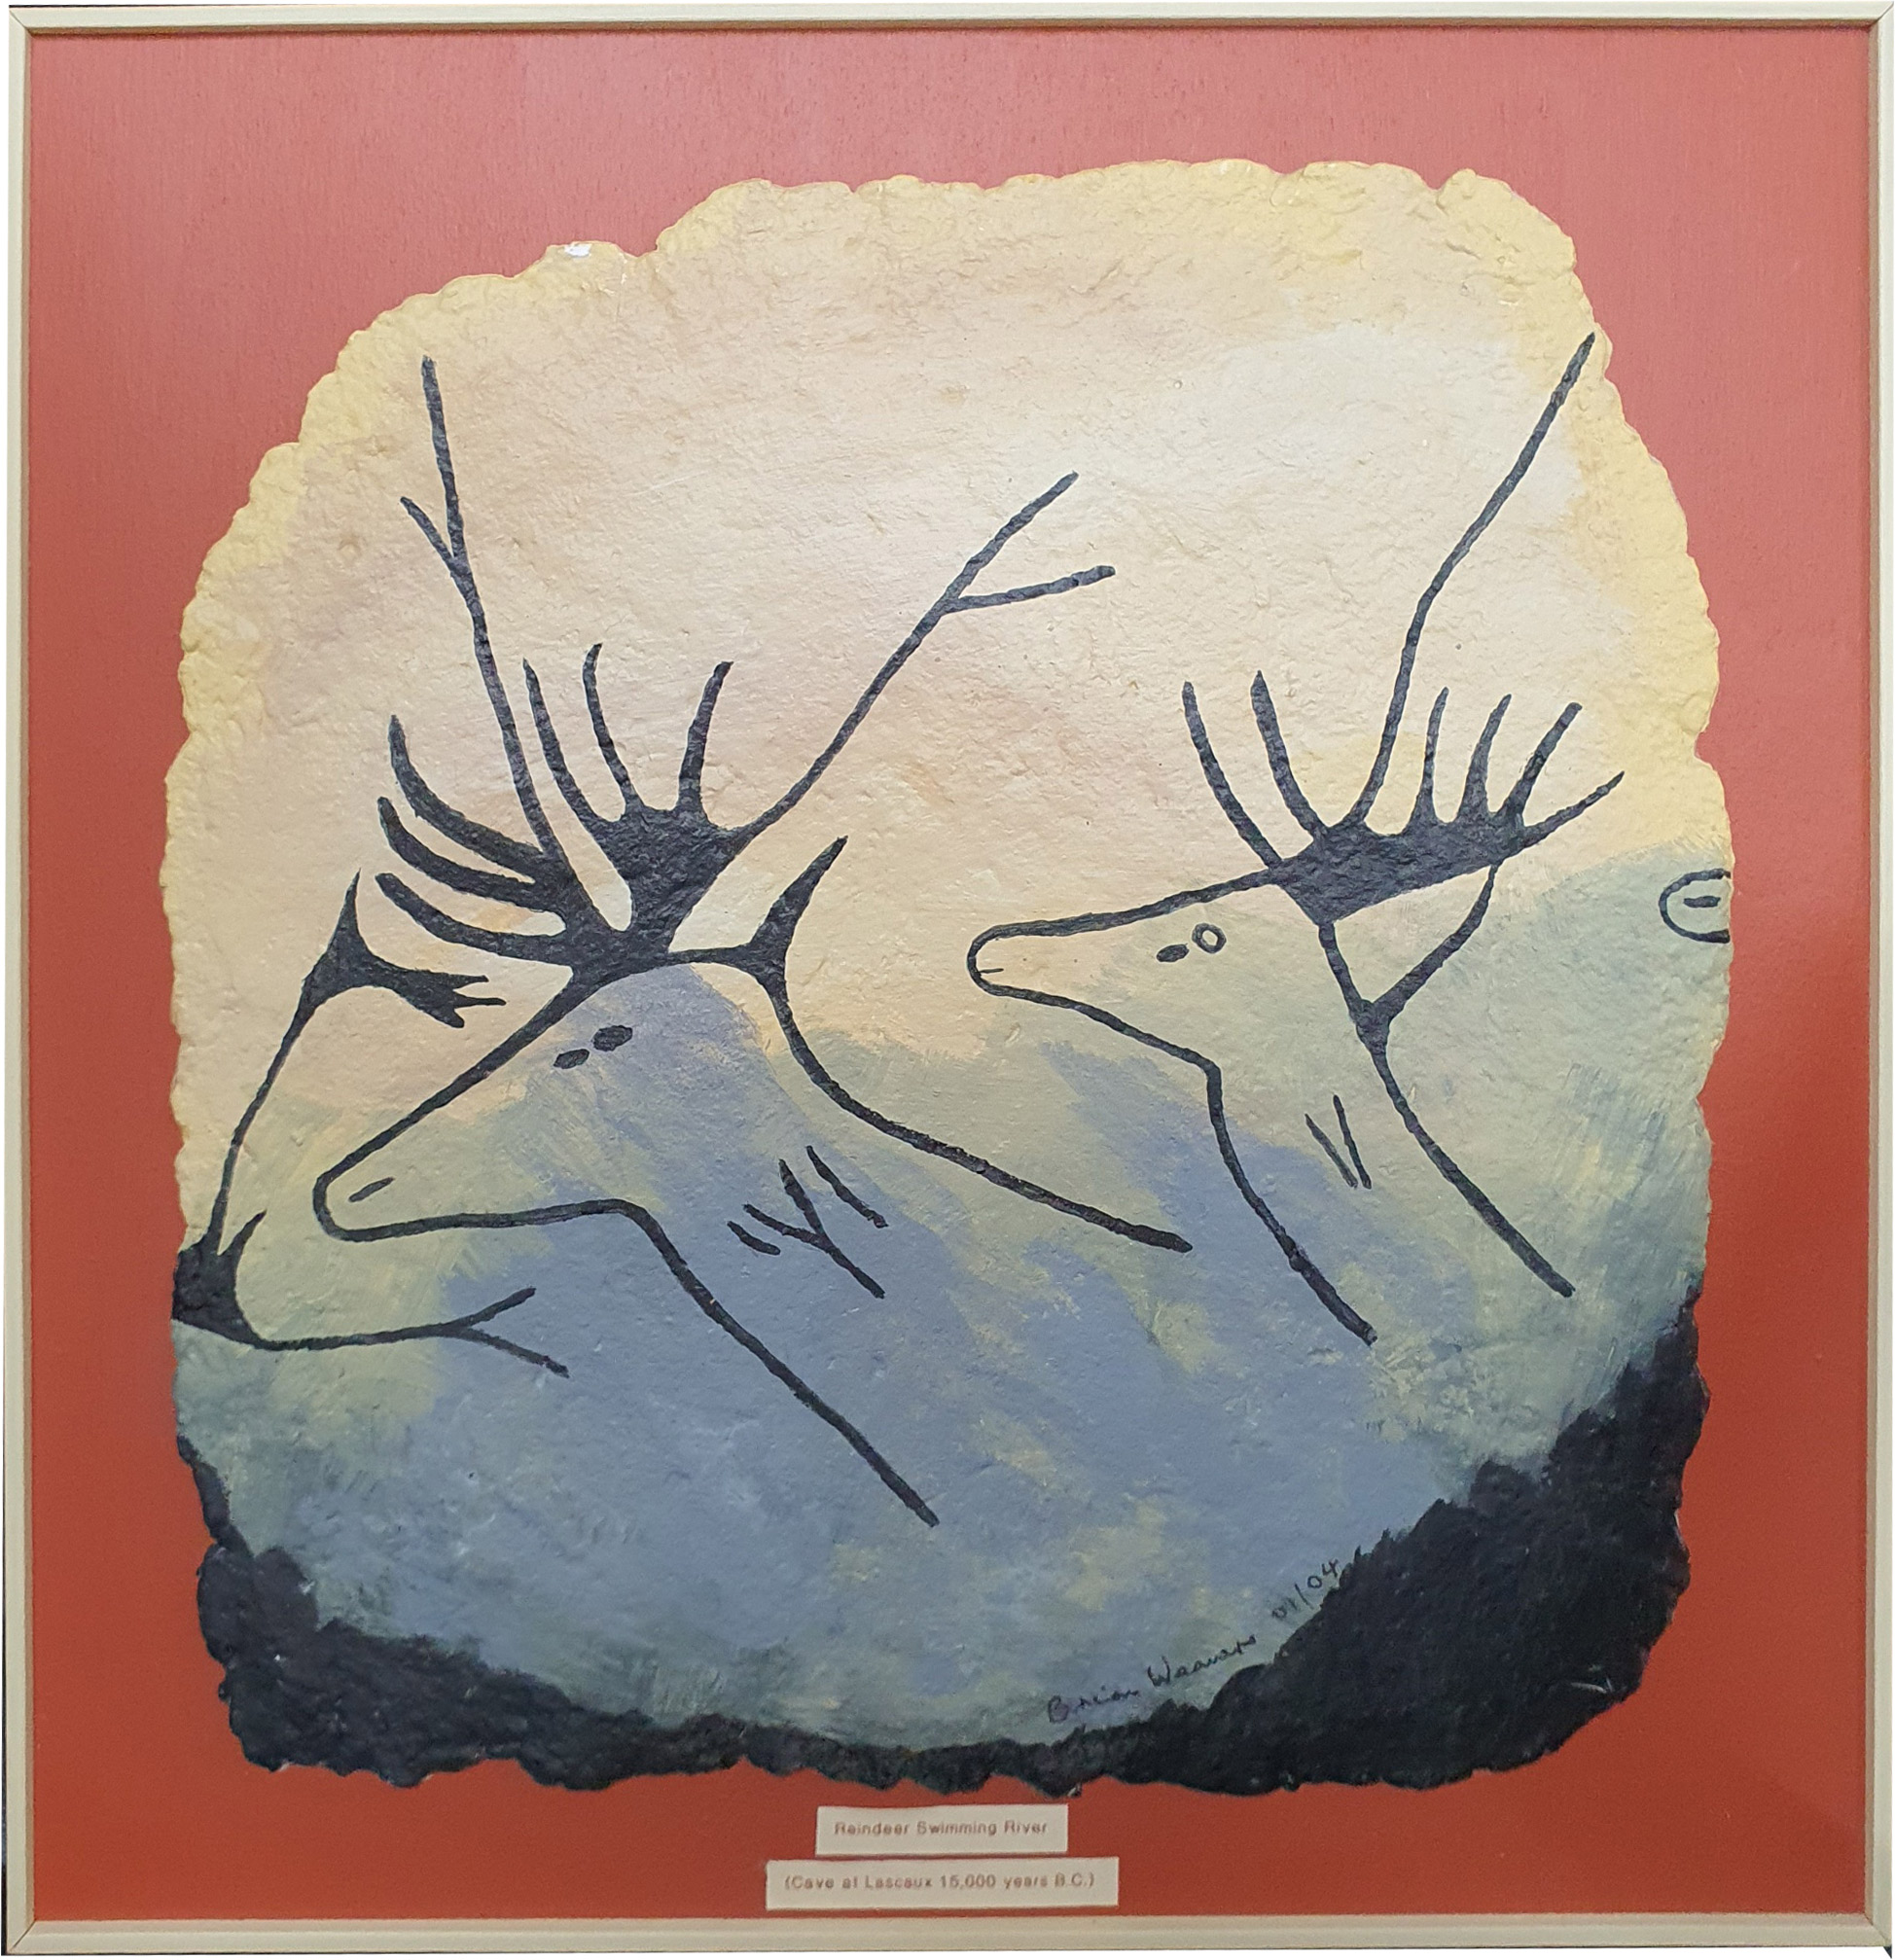 Cave Painting no. 5 - Reinedeer Swimming River - Brian Weavers Artist